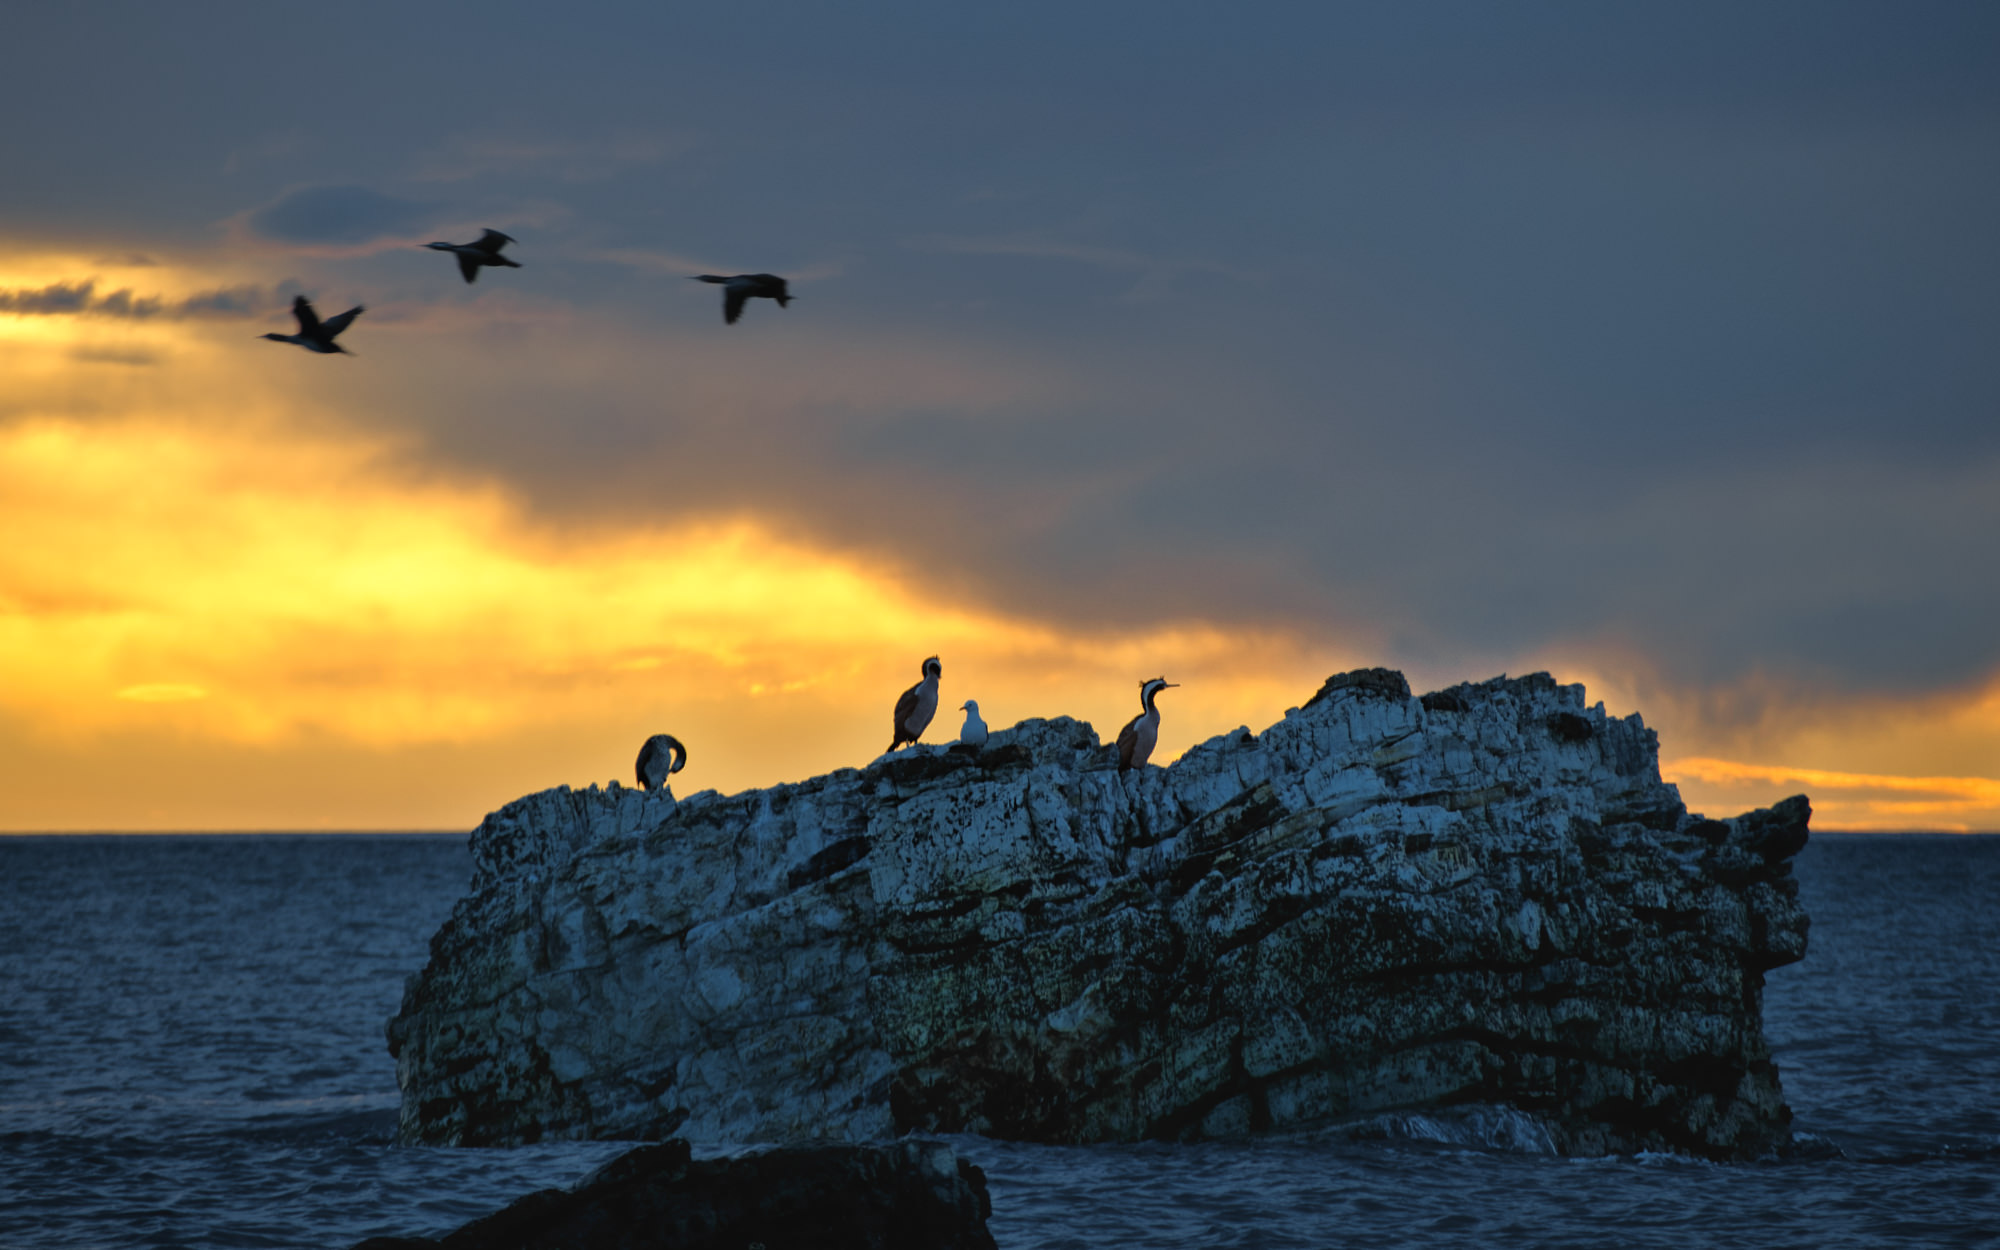 Parekareka, or Blue Shags, are just one of the 11 species of cormorant native to New Zealand. These ones, taken very early one morning in Kaikoura, are waiting on their fishing roost for the sun to rise, a mere 50 meters from the shoreline.